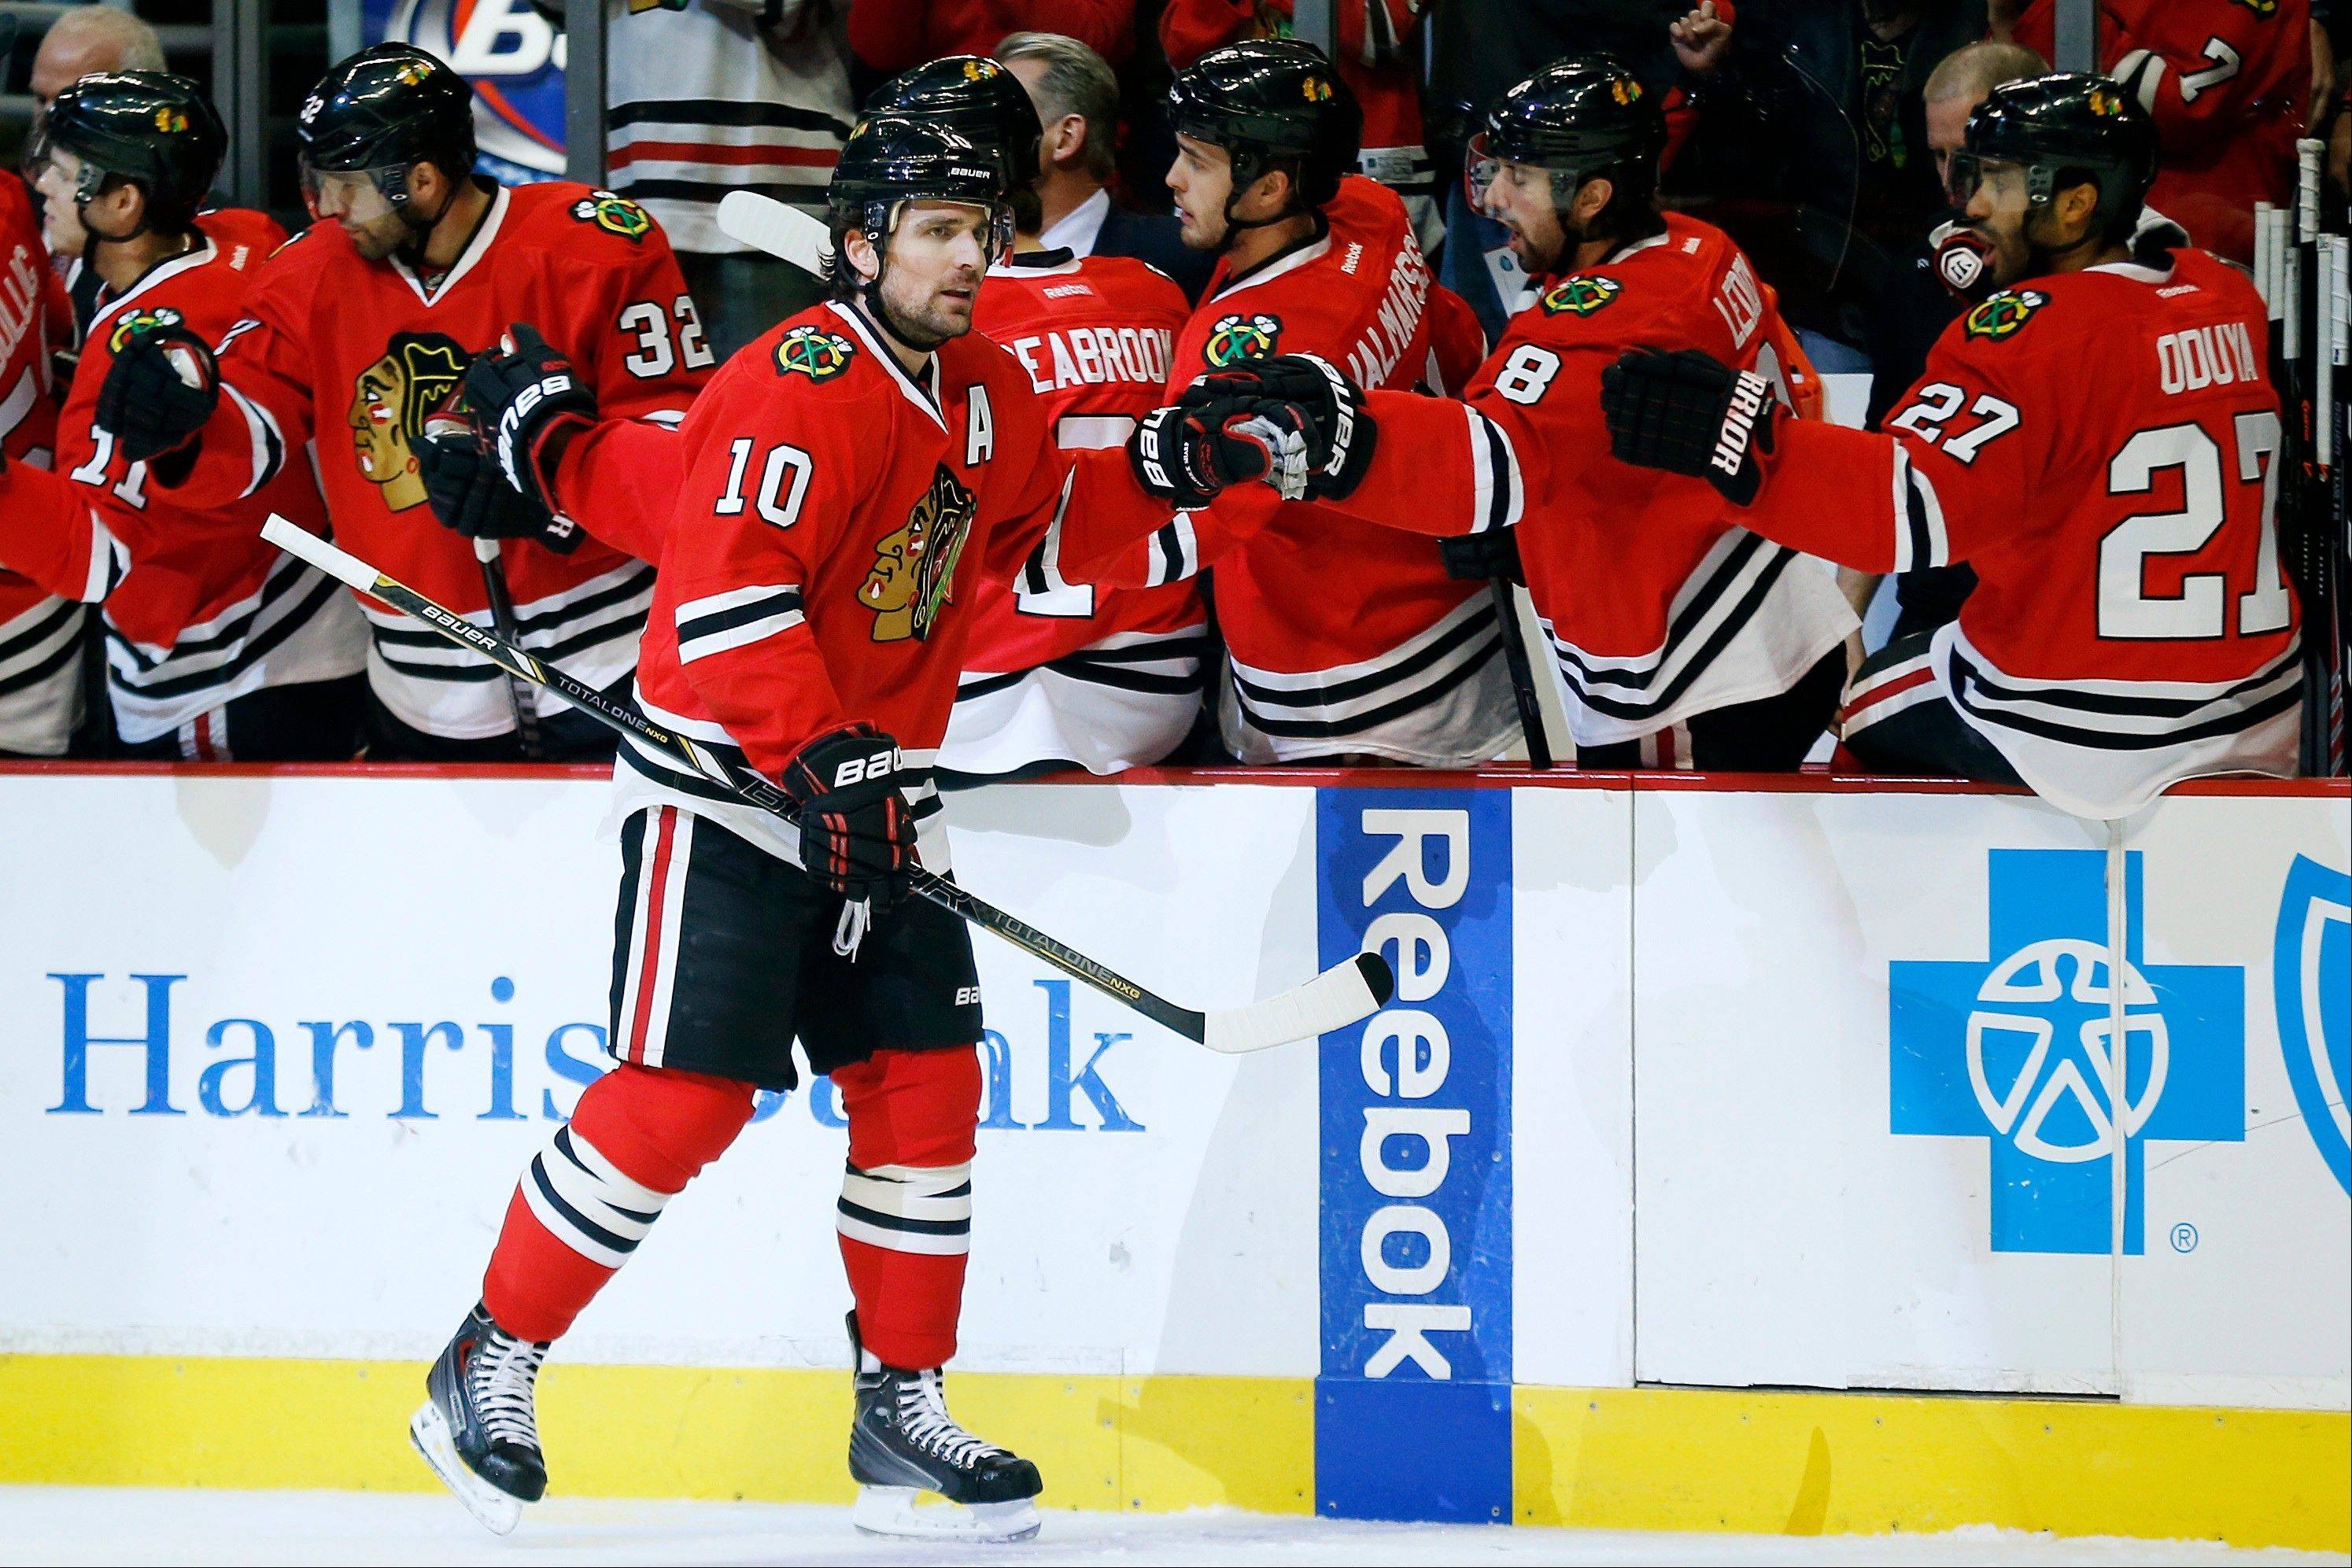 Blackhawks left wing Patrick Sharp (10) celebrates with teammates after scoring a goal against the Florida Panthers during the first period of an NHL hockey game on Sunday, Dec. 8, 2013, in Chicago.